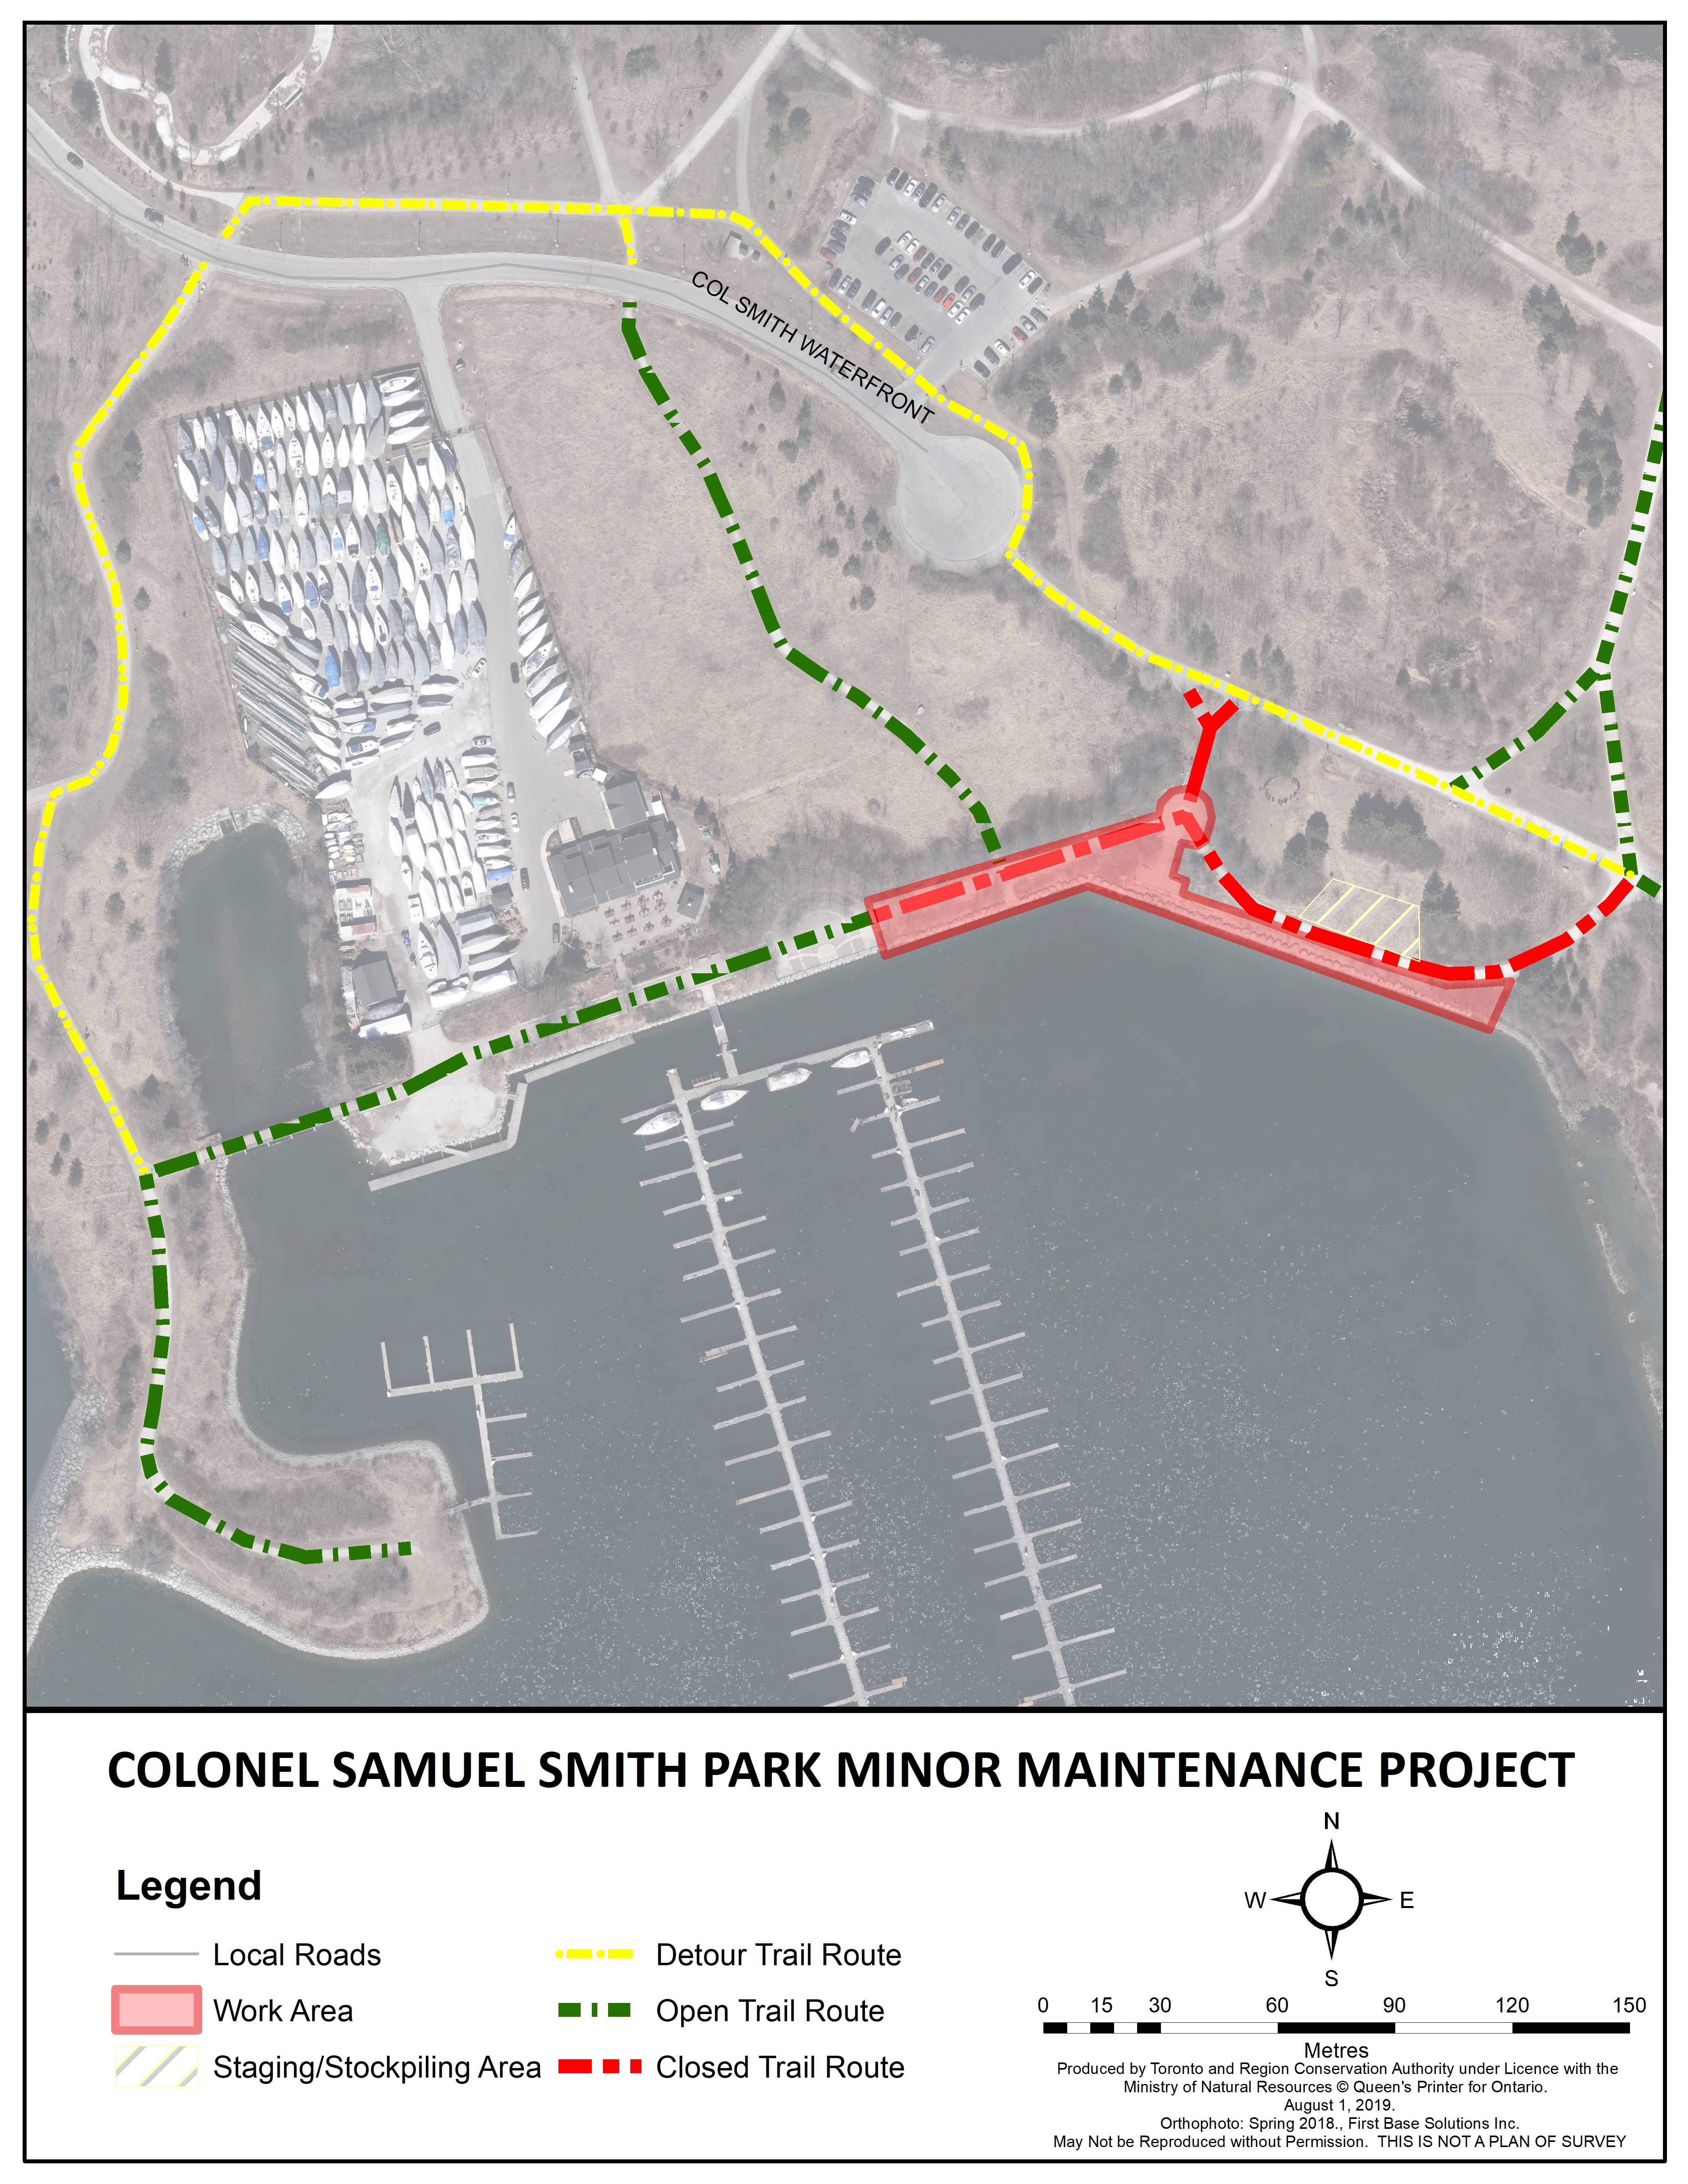 Construction details for Colonel Samuel Smith Park. Source: TRCA, 2019.